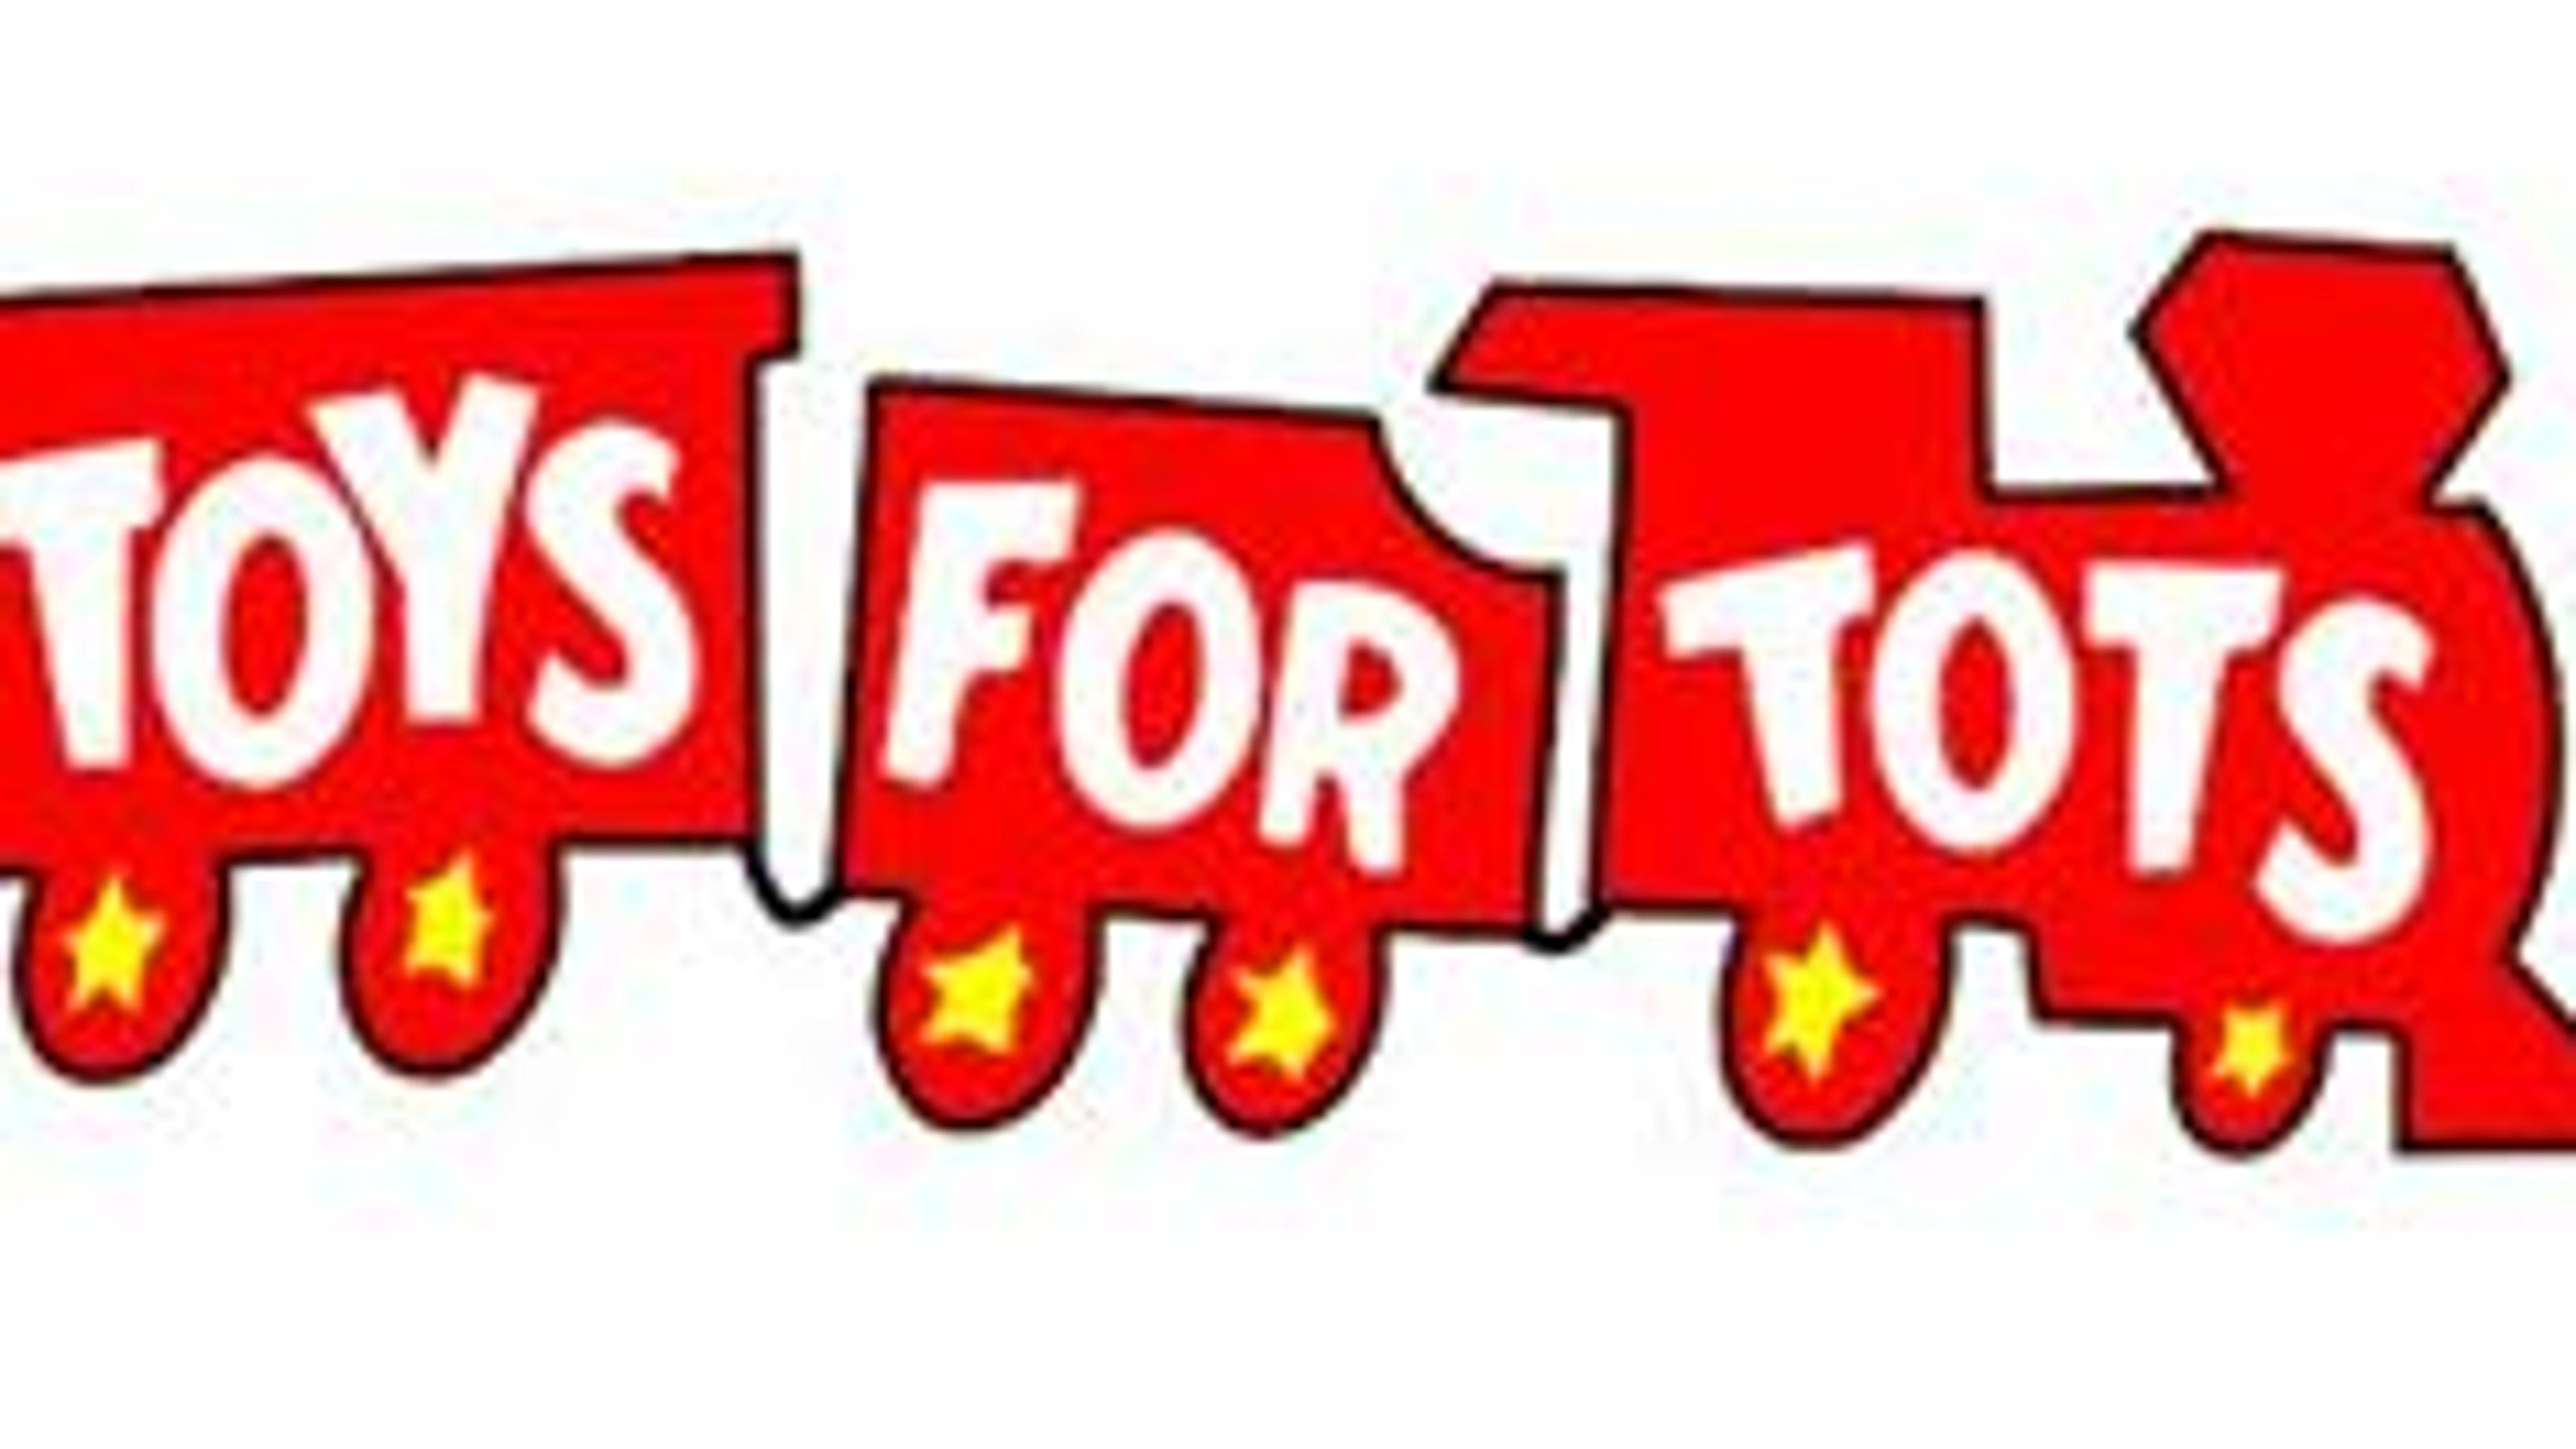 Toys For Tots Founder : Toys for tots foundation reviews naples marine corps